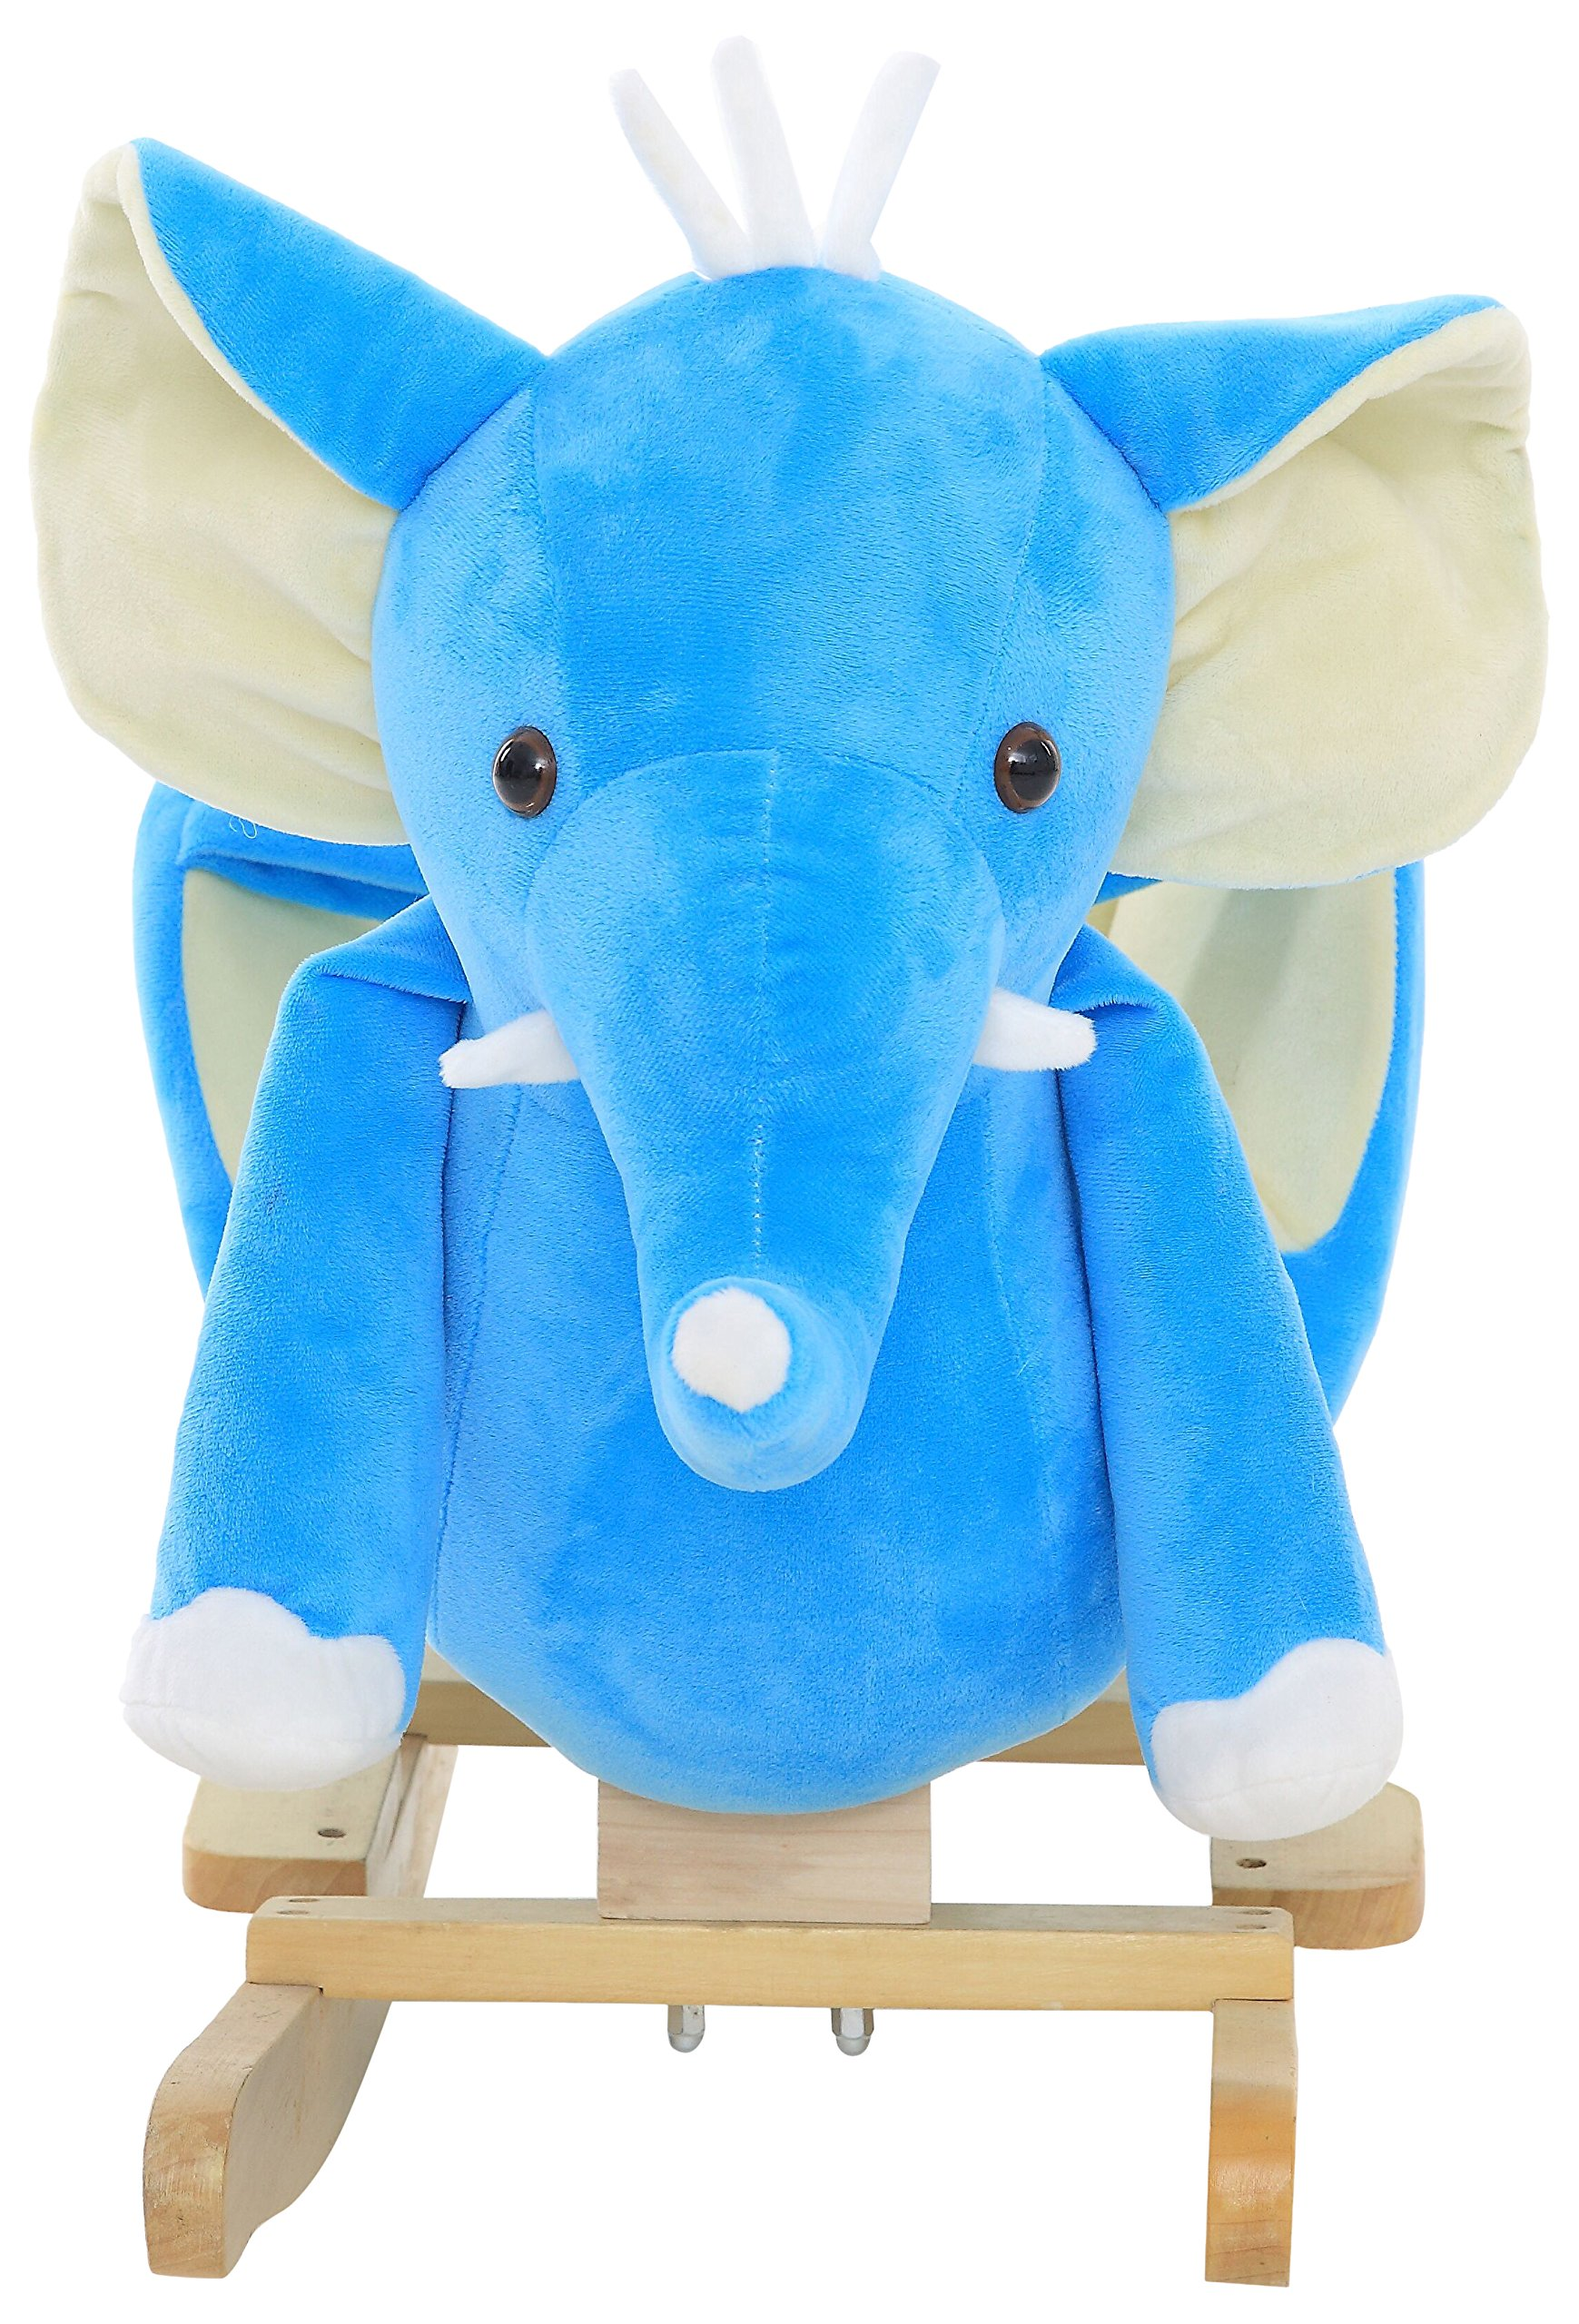 DanyBaby Ultra Soft Rocking Animal Ride on Plush Elephant Chair Embroidered Words ''I Love My Baby!''